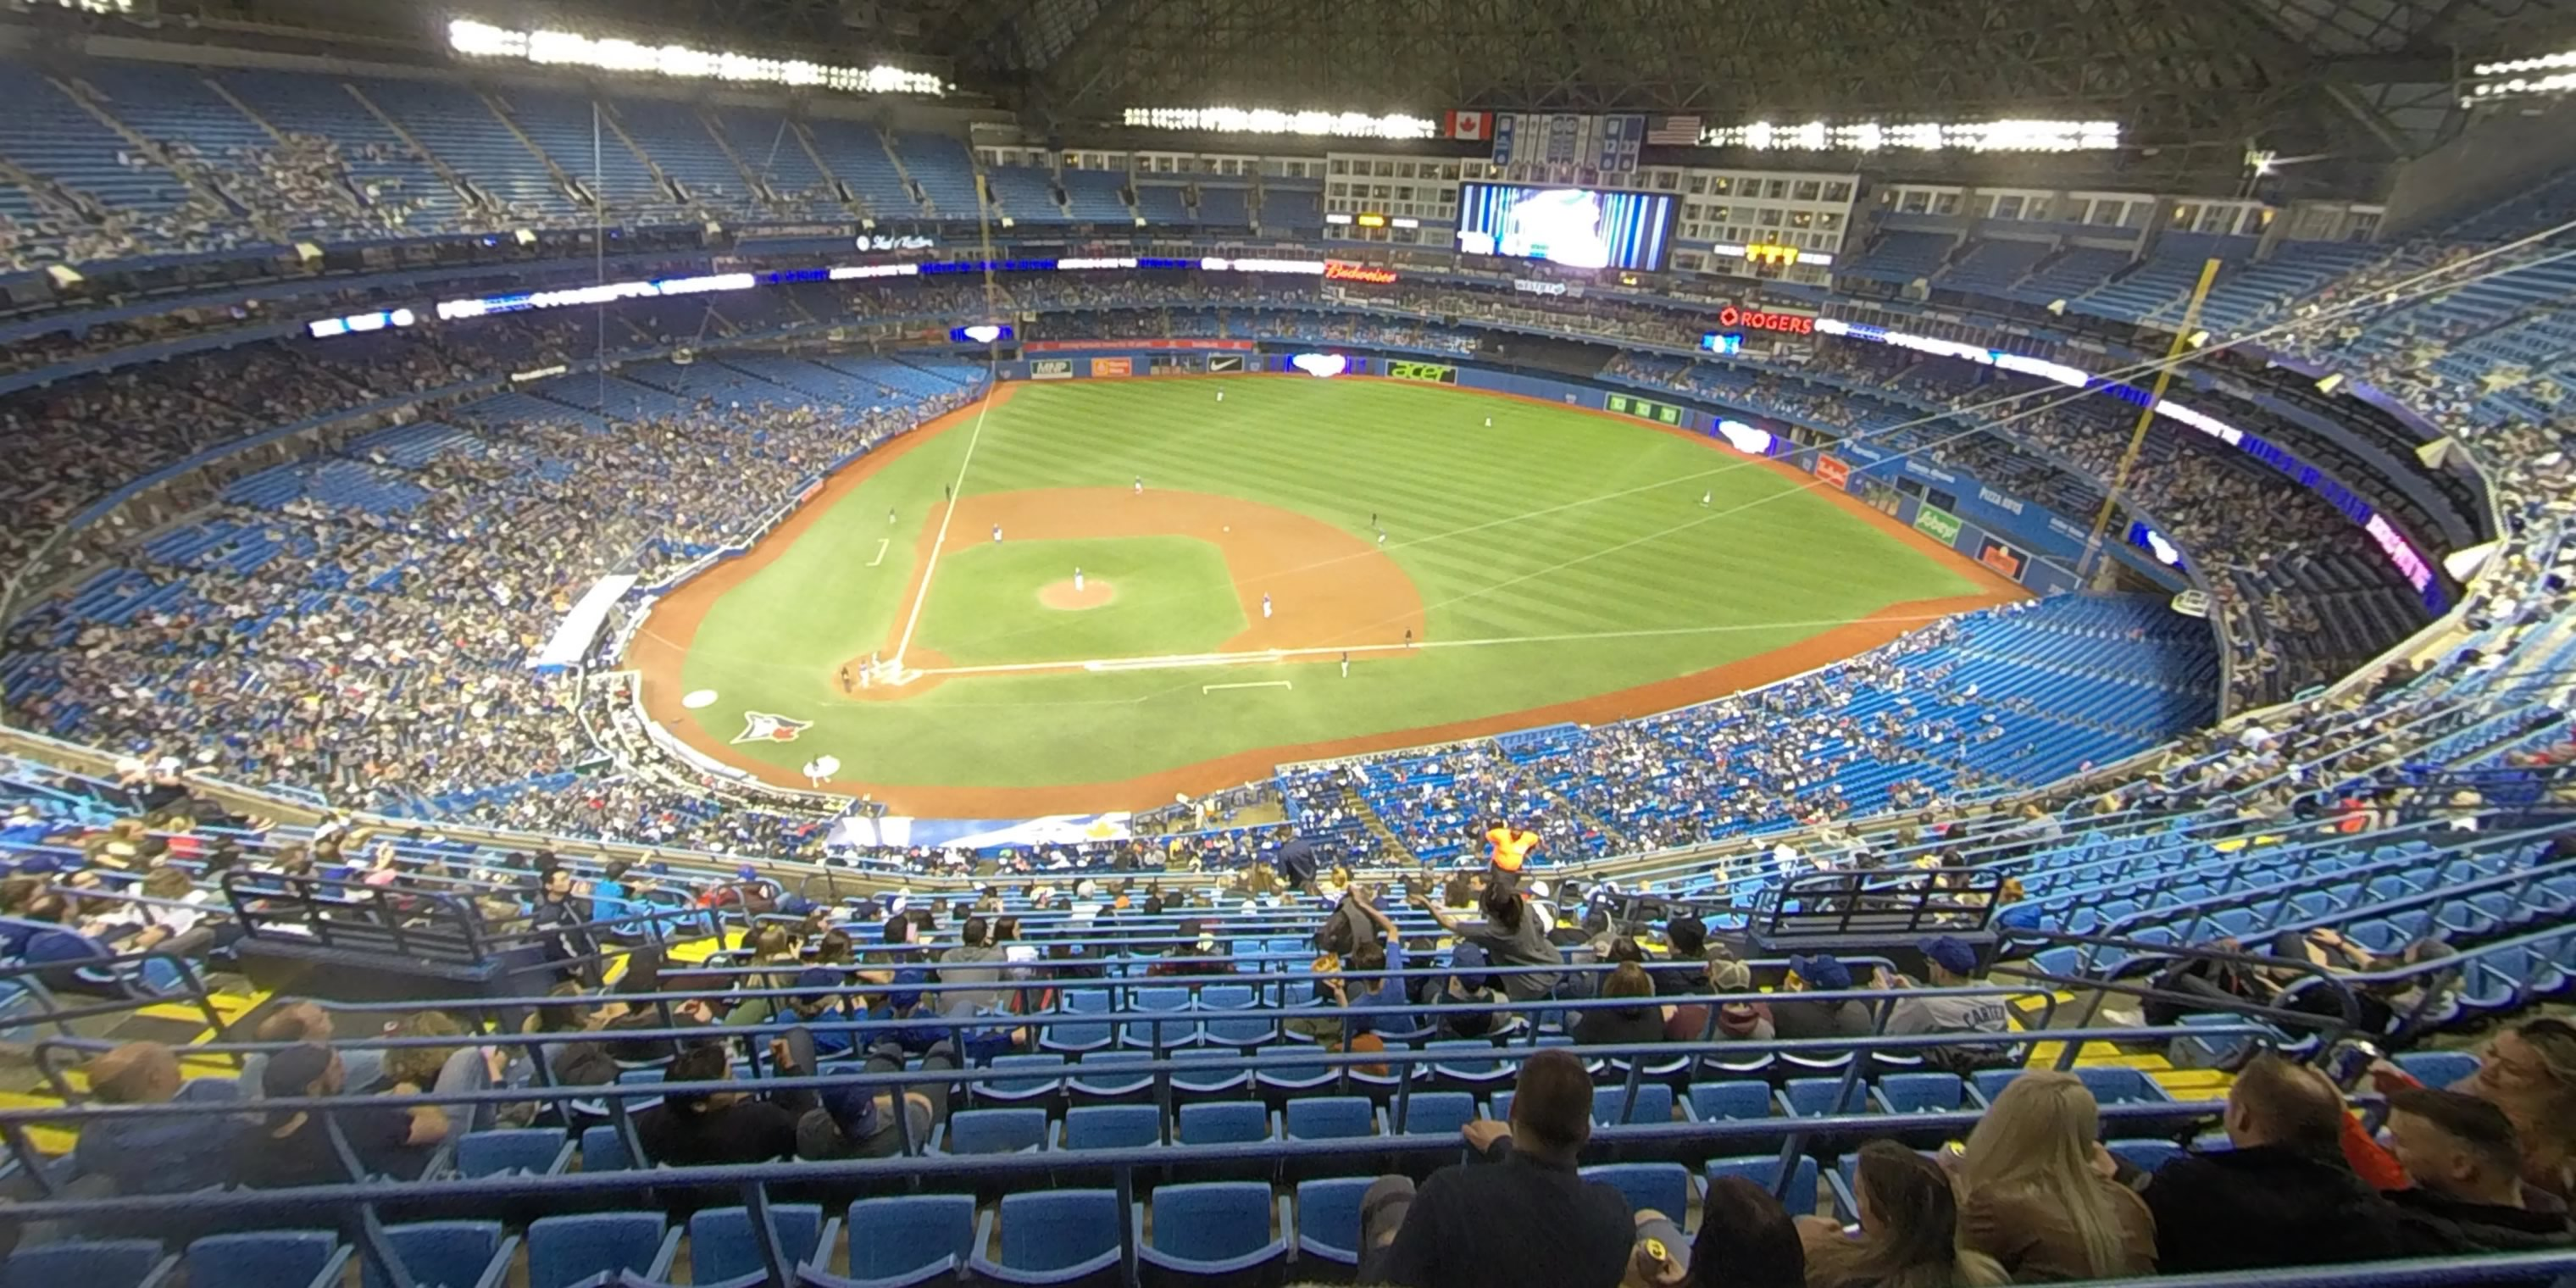 Rogers Centre Seating Guide